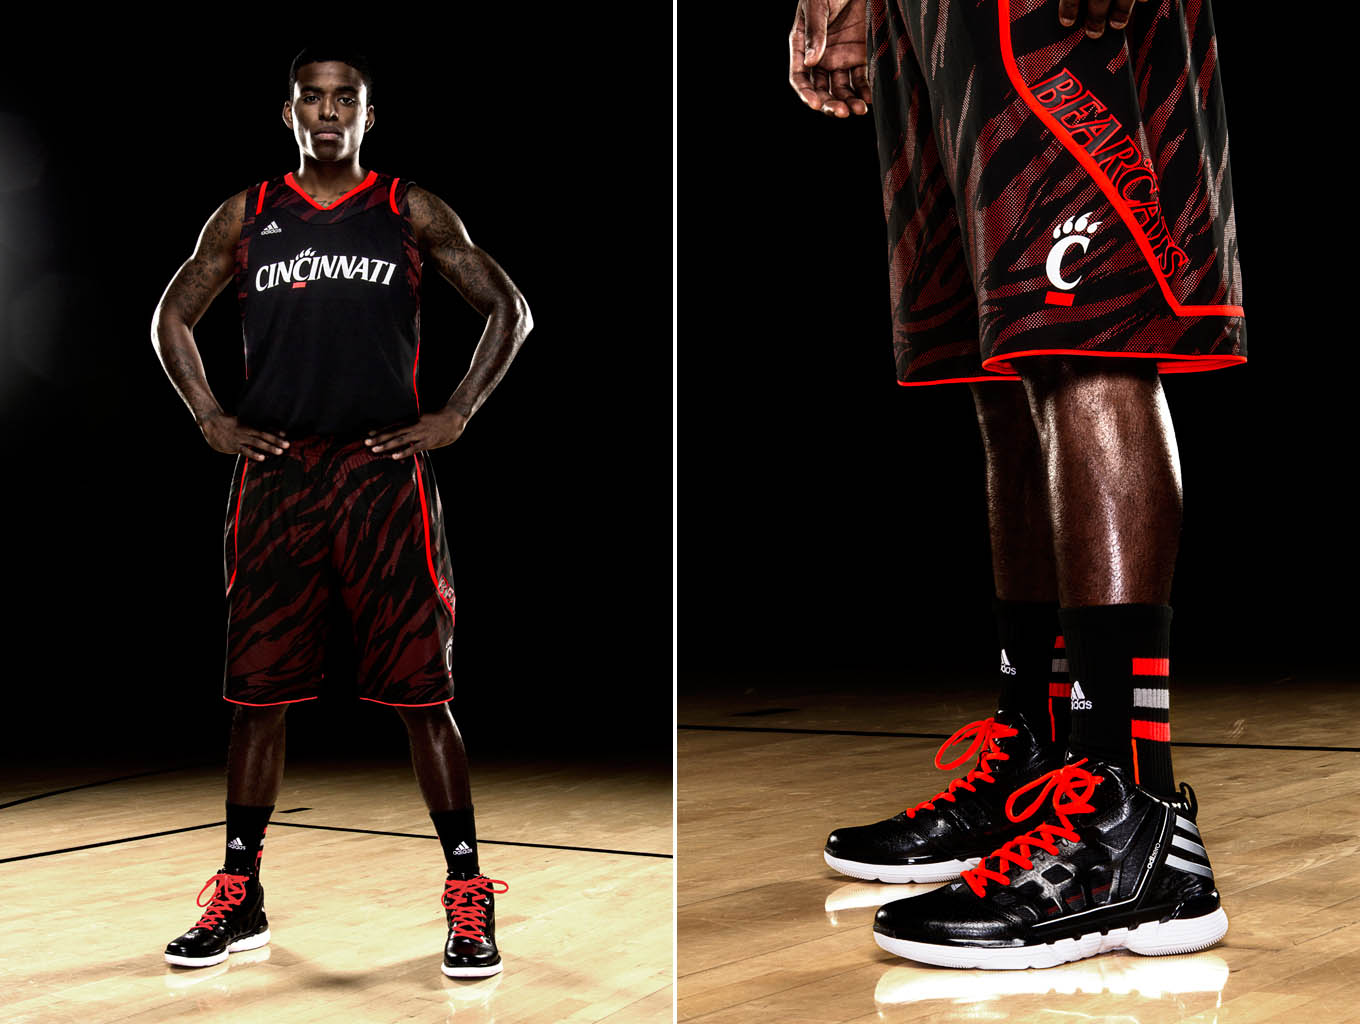 adidas adiZero Uniform and Shadow Cincinnati Bearcats Away